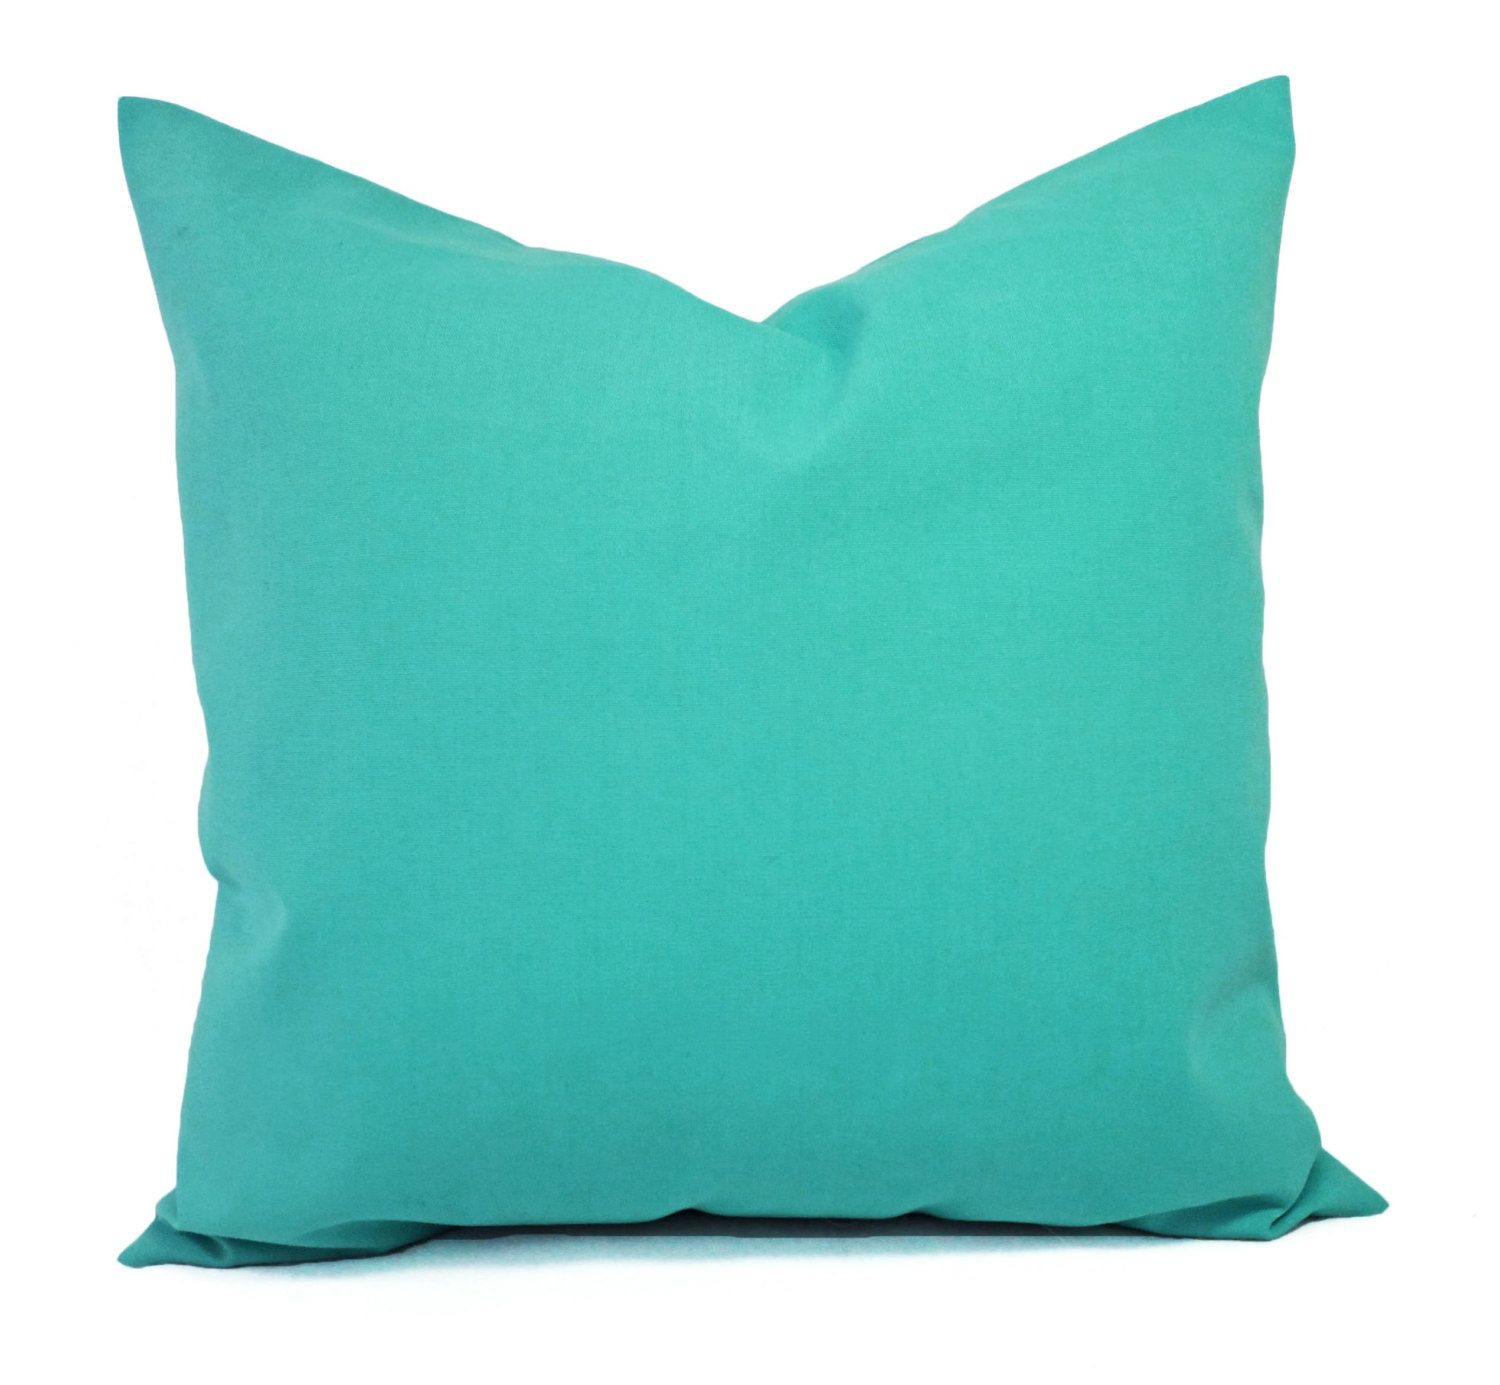 Two Indoor Outdoor Pillow Covers   Solid Green Pillow Covers   Aqua Pillow    Teal Pillow